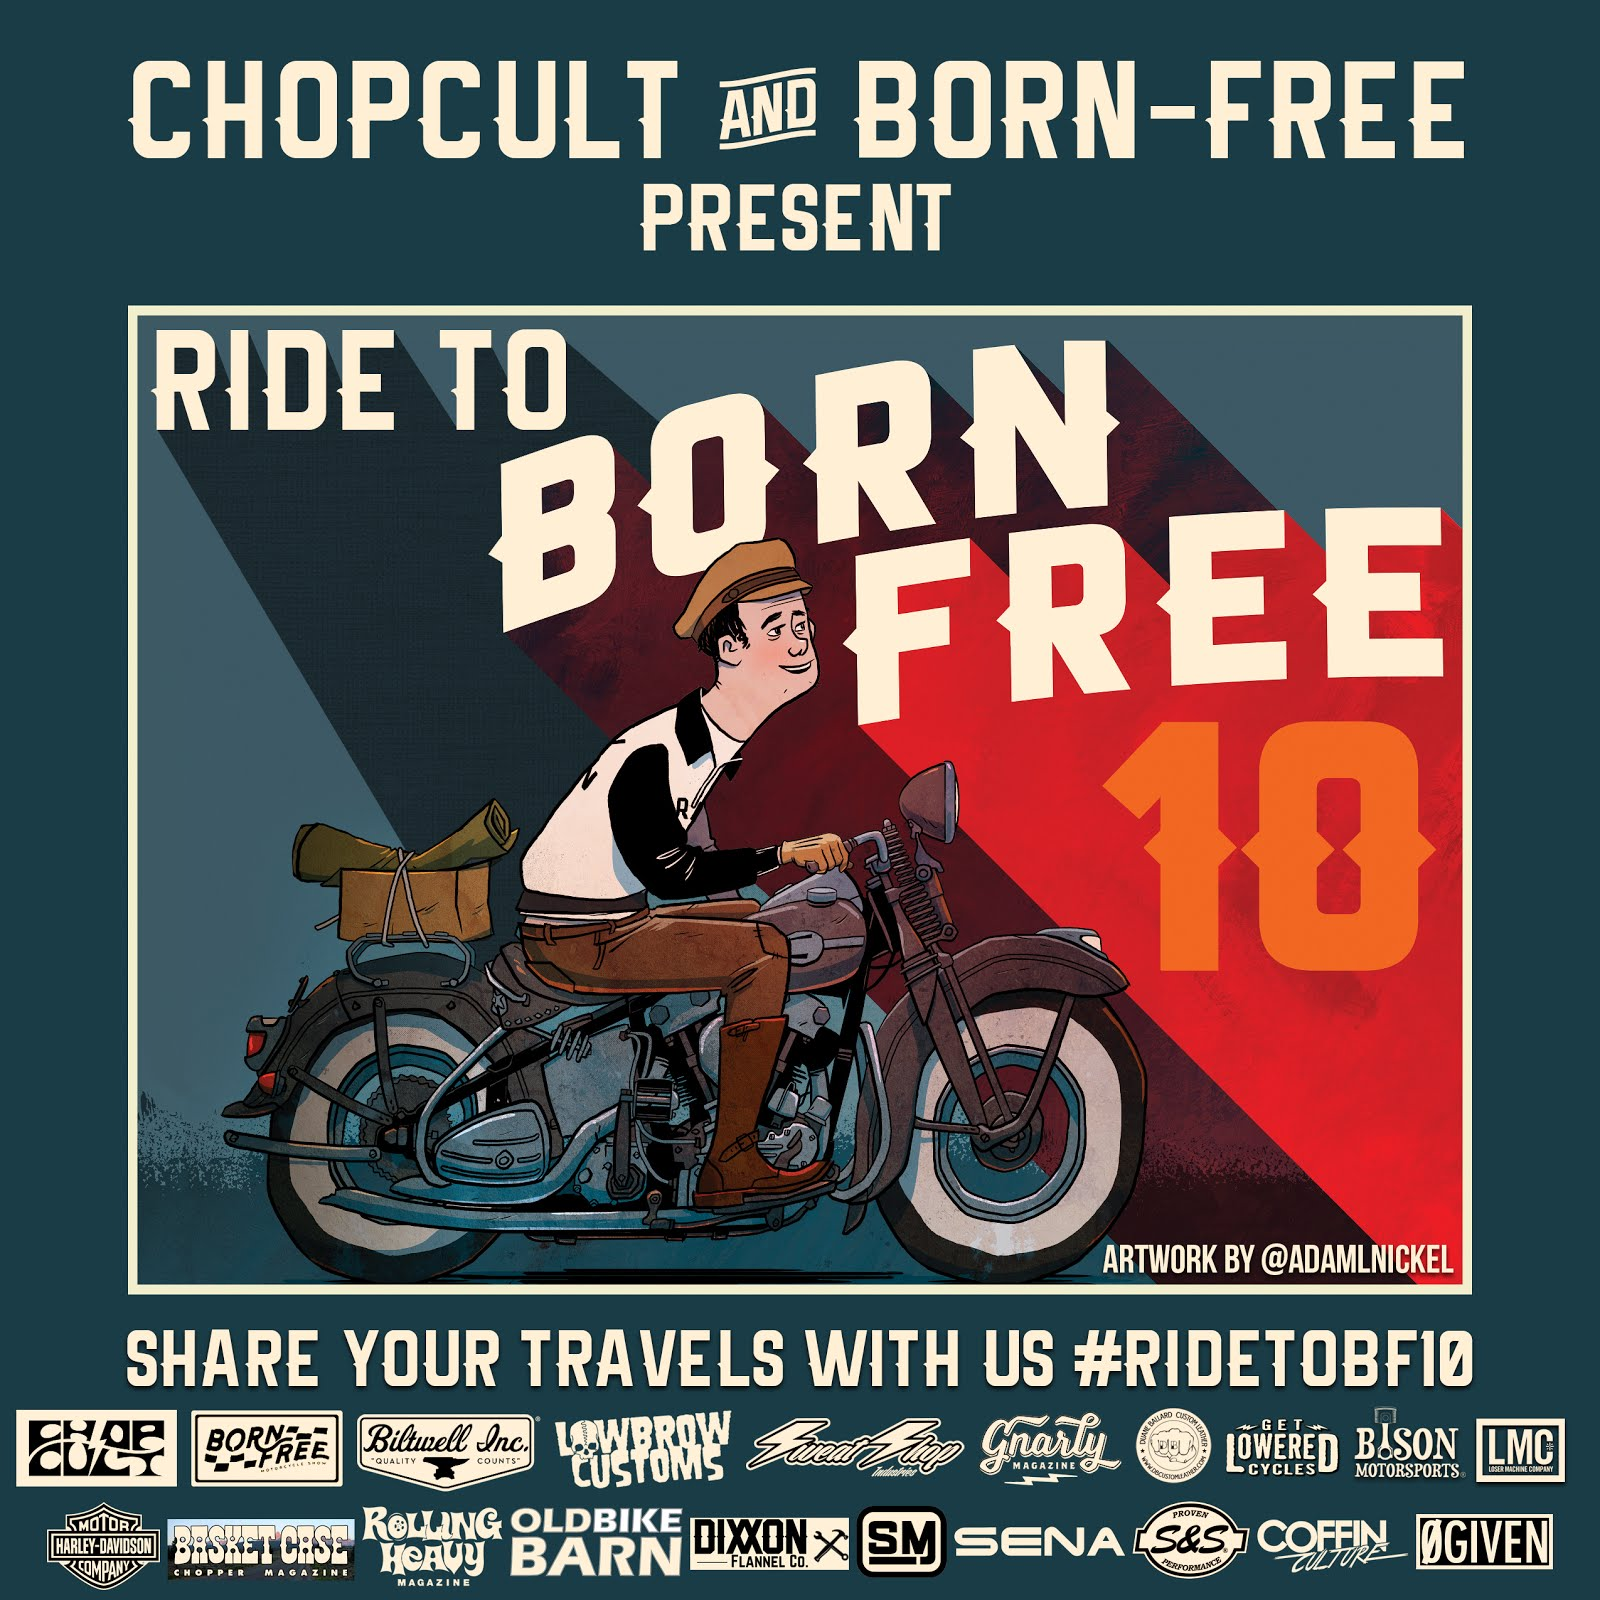 Ride To Born-Free10